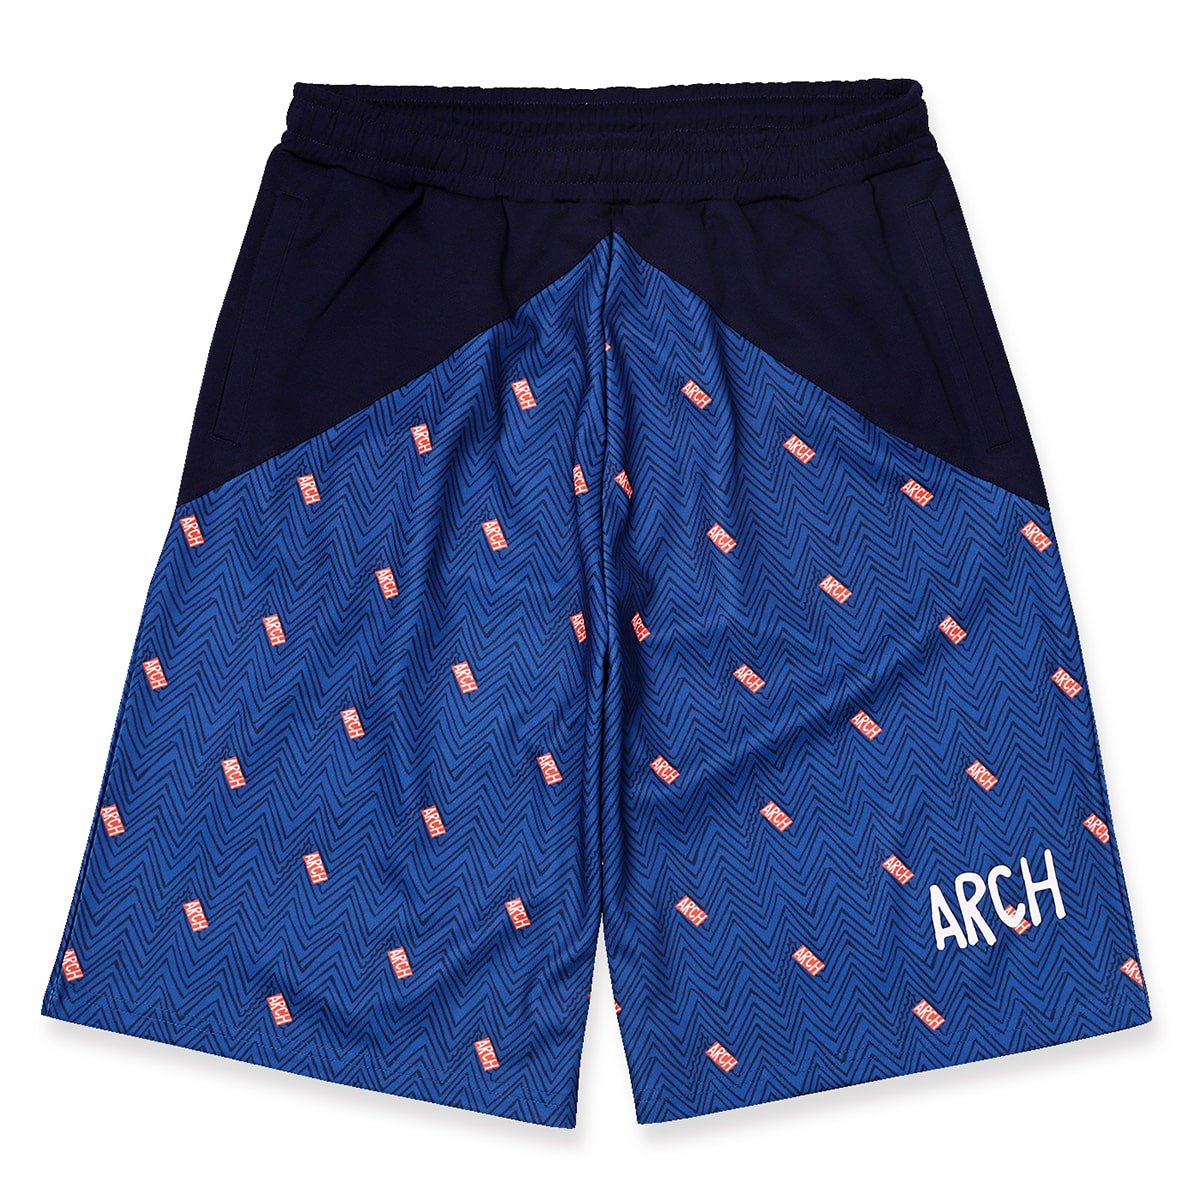 jaggy shorts【navy】